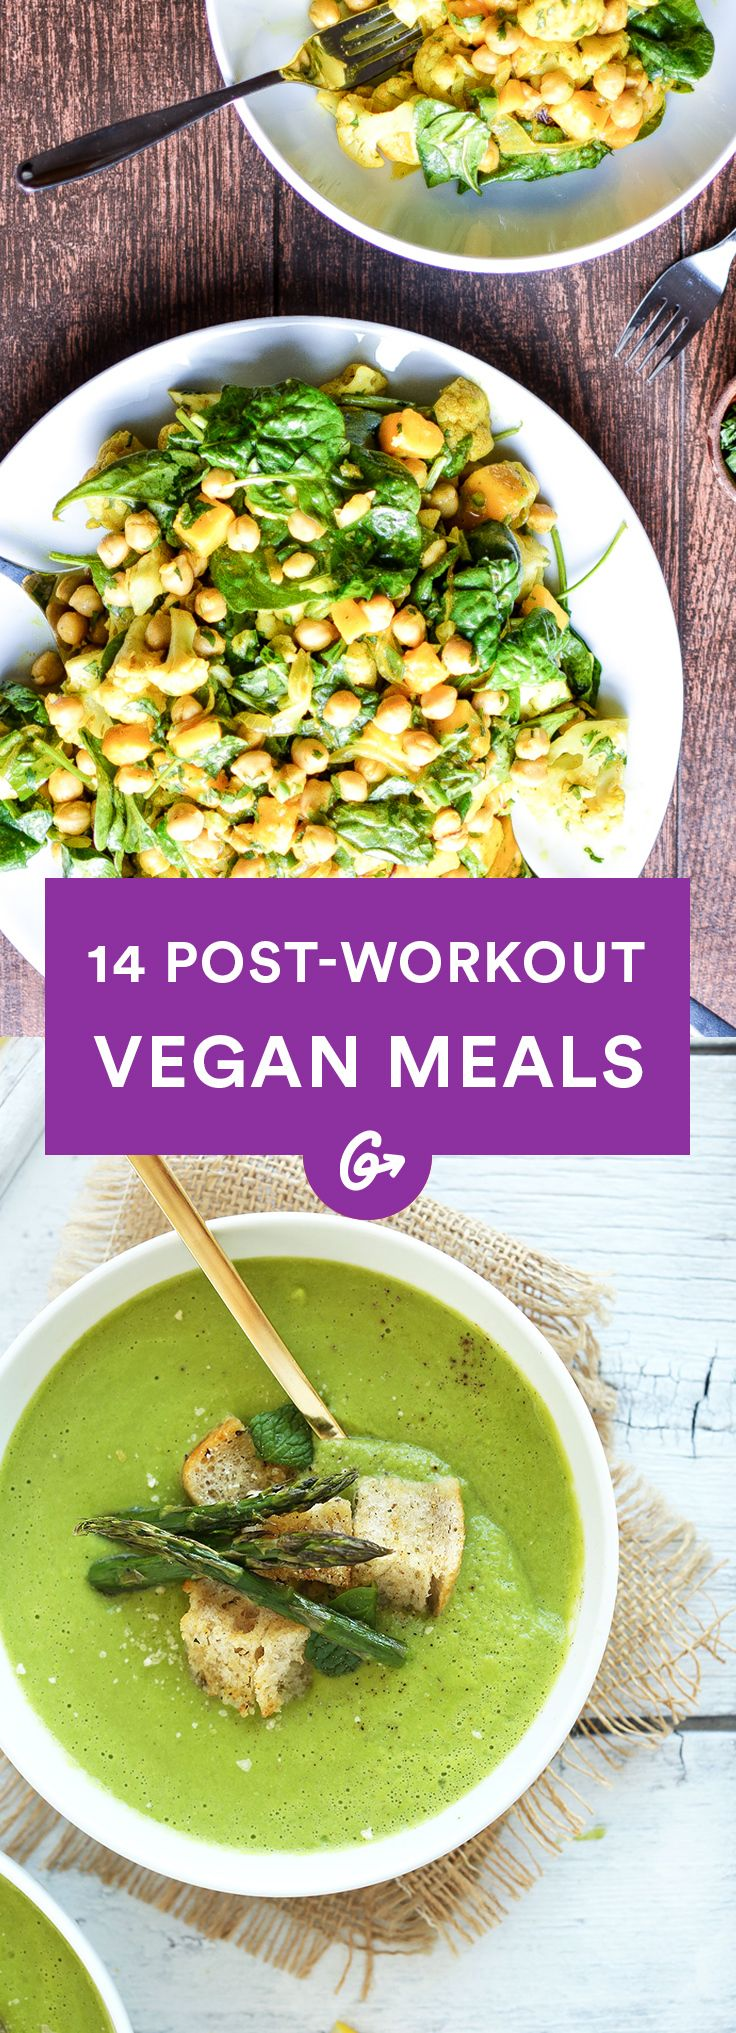 The verdict is in: Muscles don't need meat. #vegan #postworkout #recipes http://greatist.com/eat/vegan-post-workout-meals